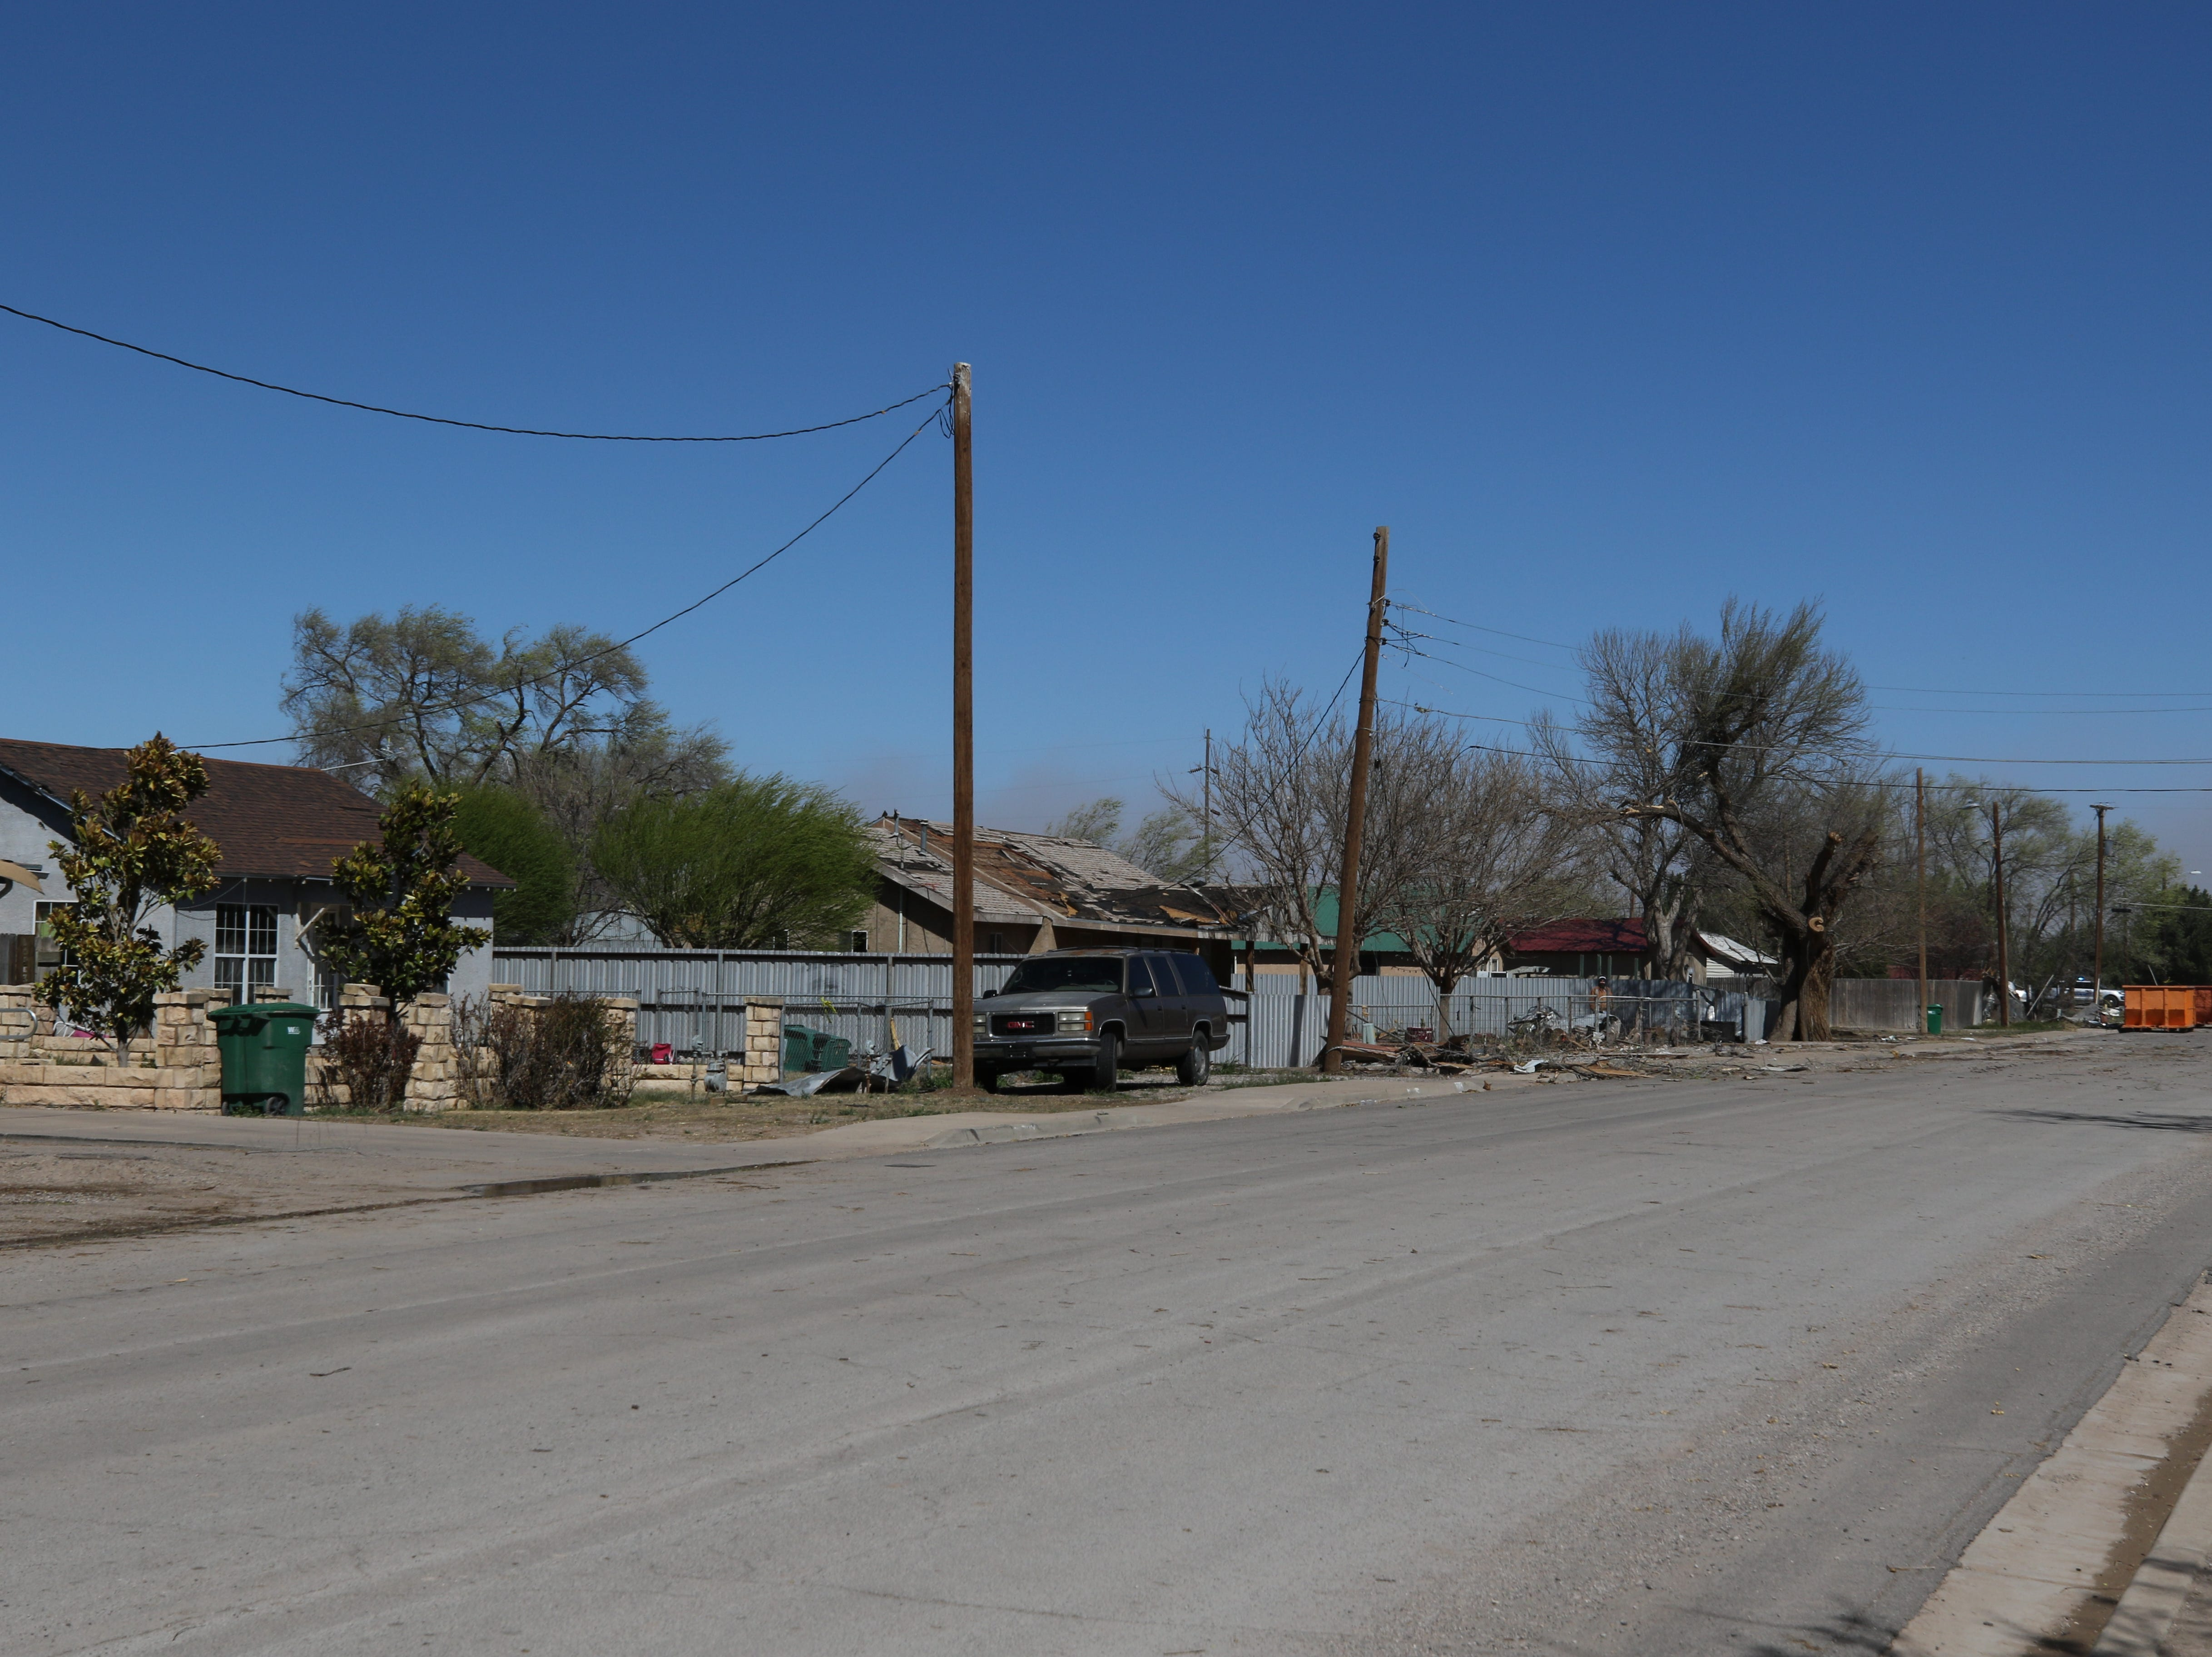 Houses in a Dexter,New Mexico neighborhood suffered damage from a tornado that struck Tuesday.